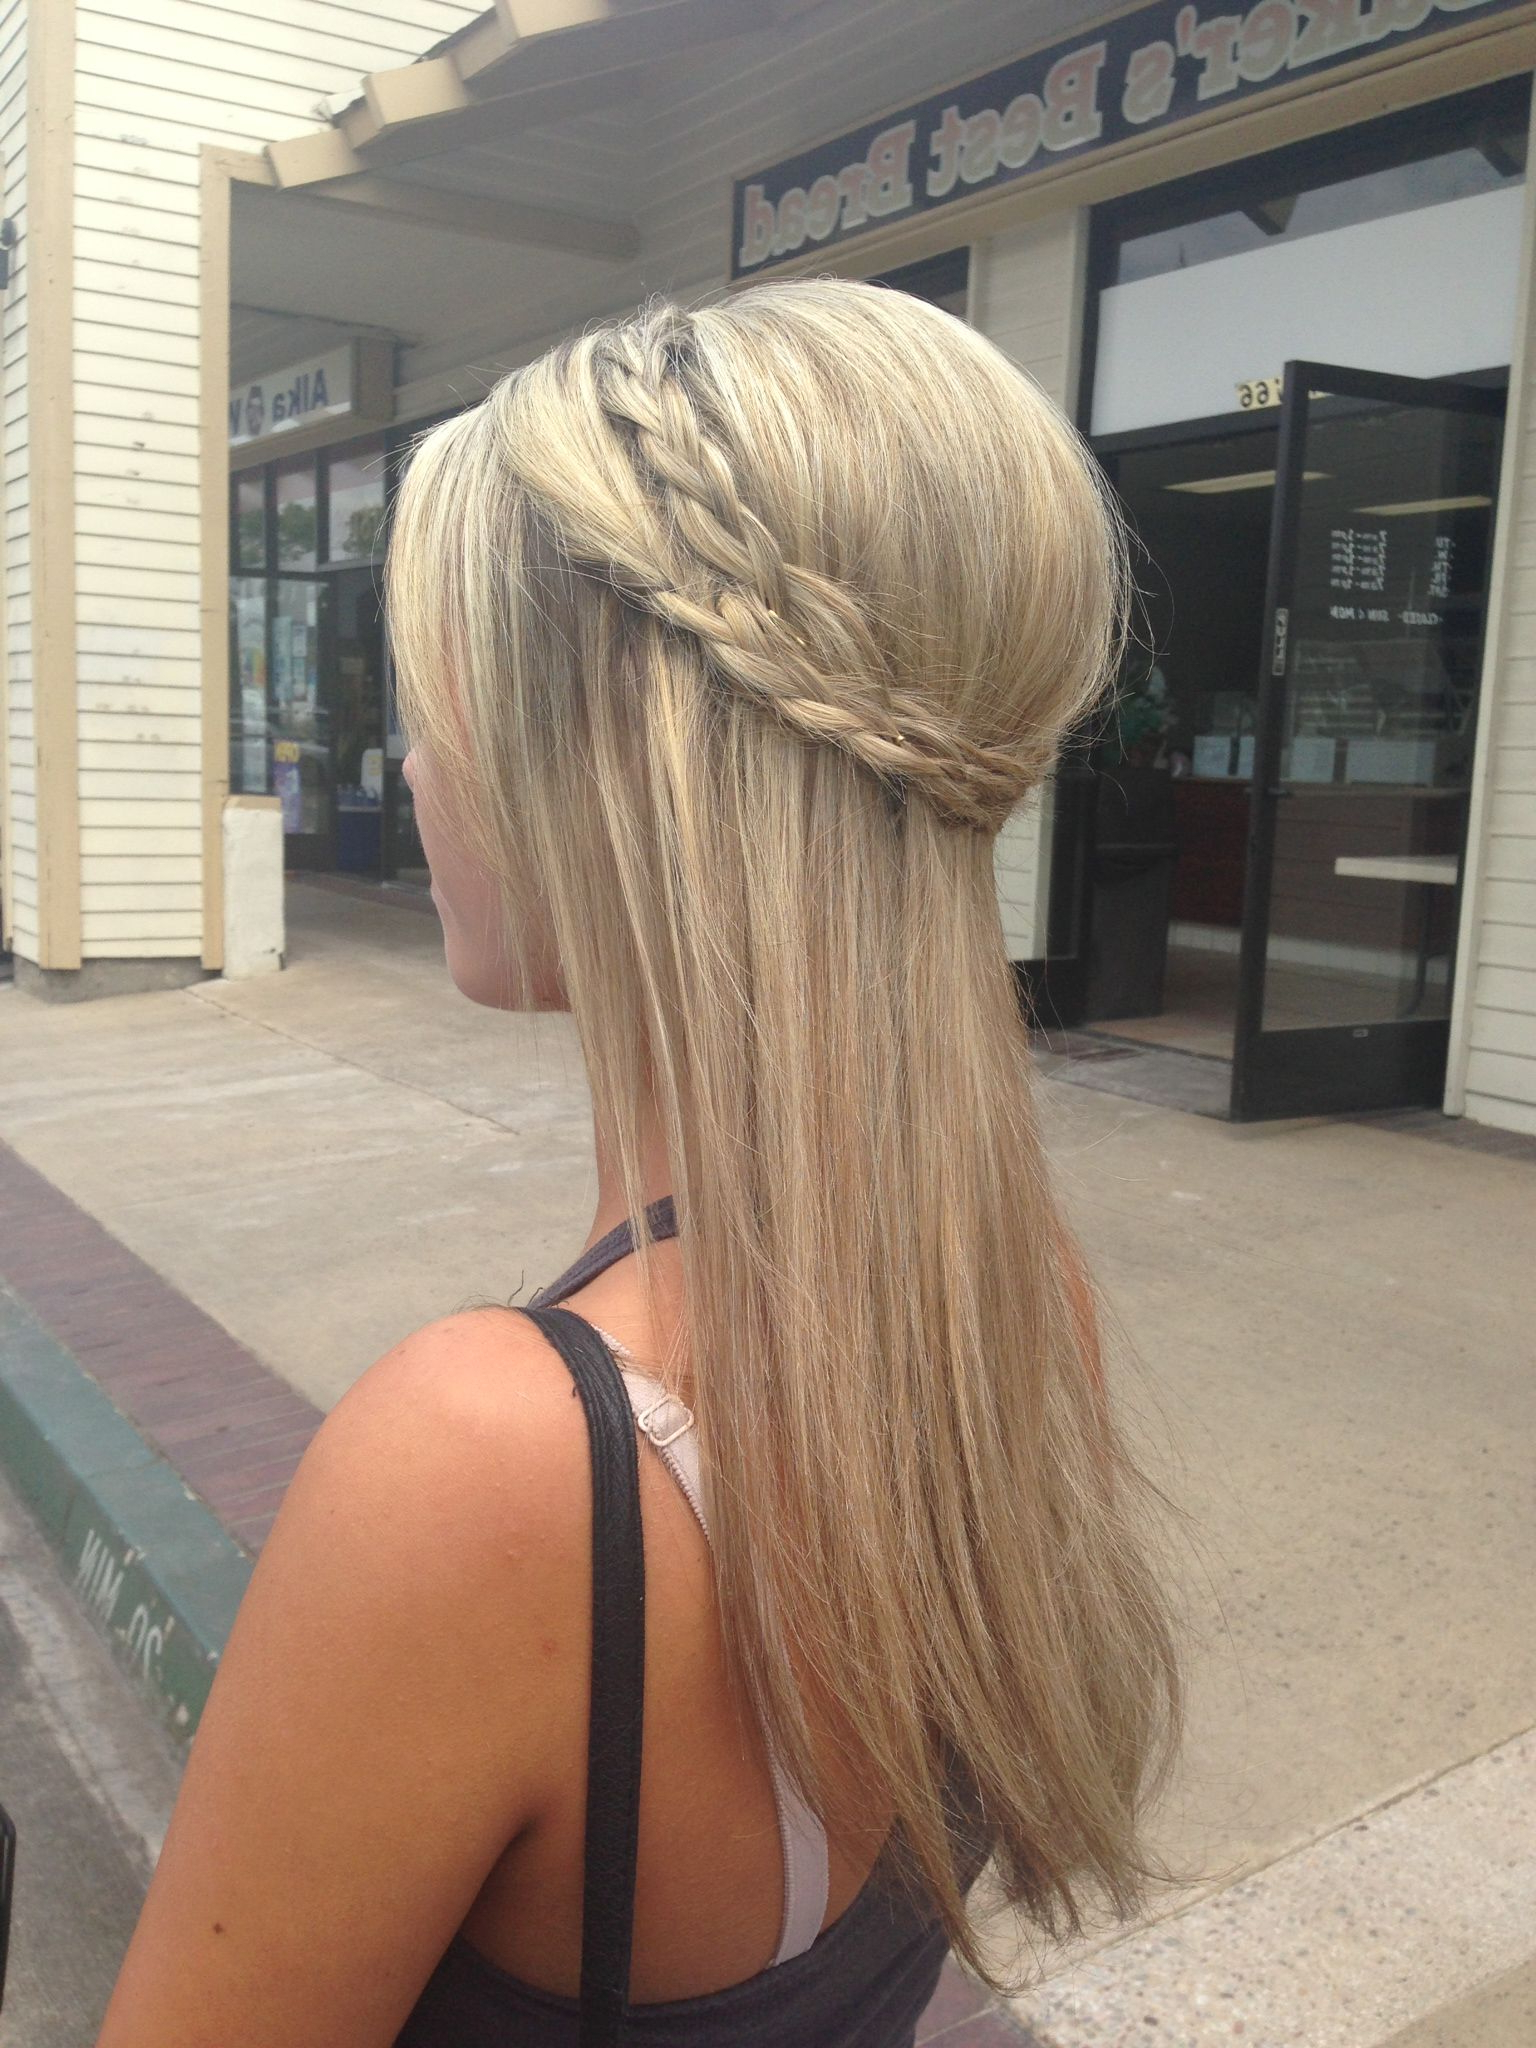 Hair Pertaining To Most Current Teased Prom Updos With Cute Headband (Gallery 10 of 20)